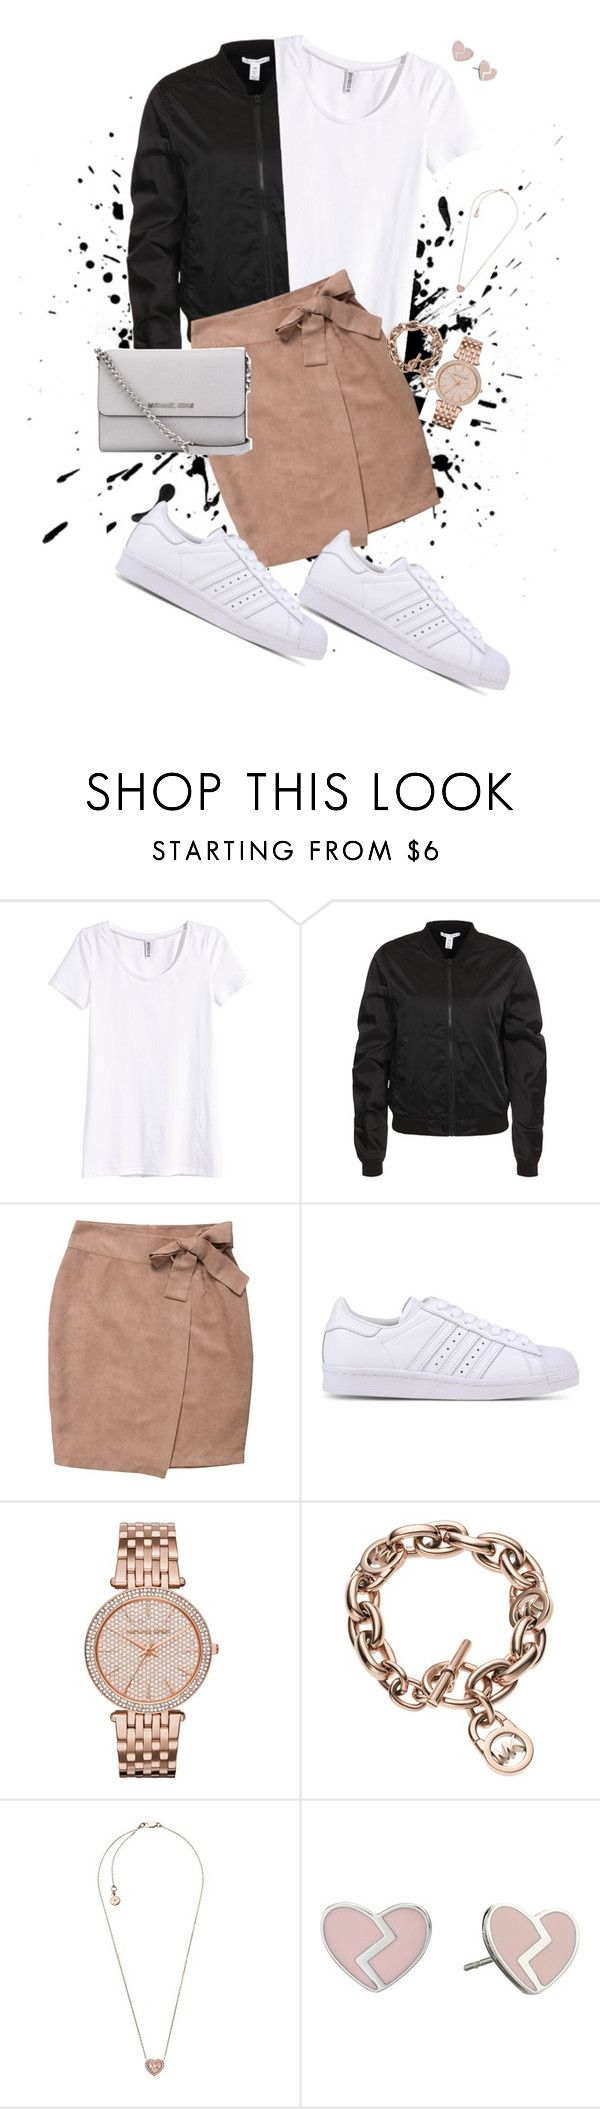 sb by louisesandstroms on Polyvore featuring H&M, adidas Originals, MICHAEL Michael Kors and Marc by Marc Jacobs